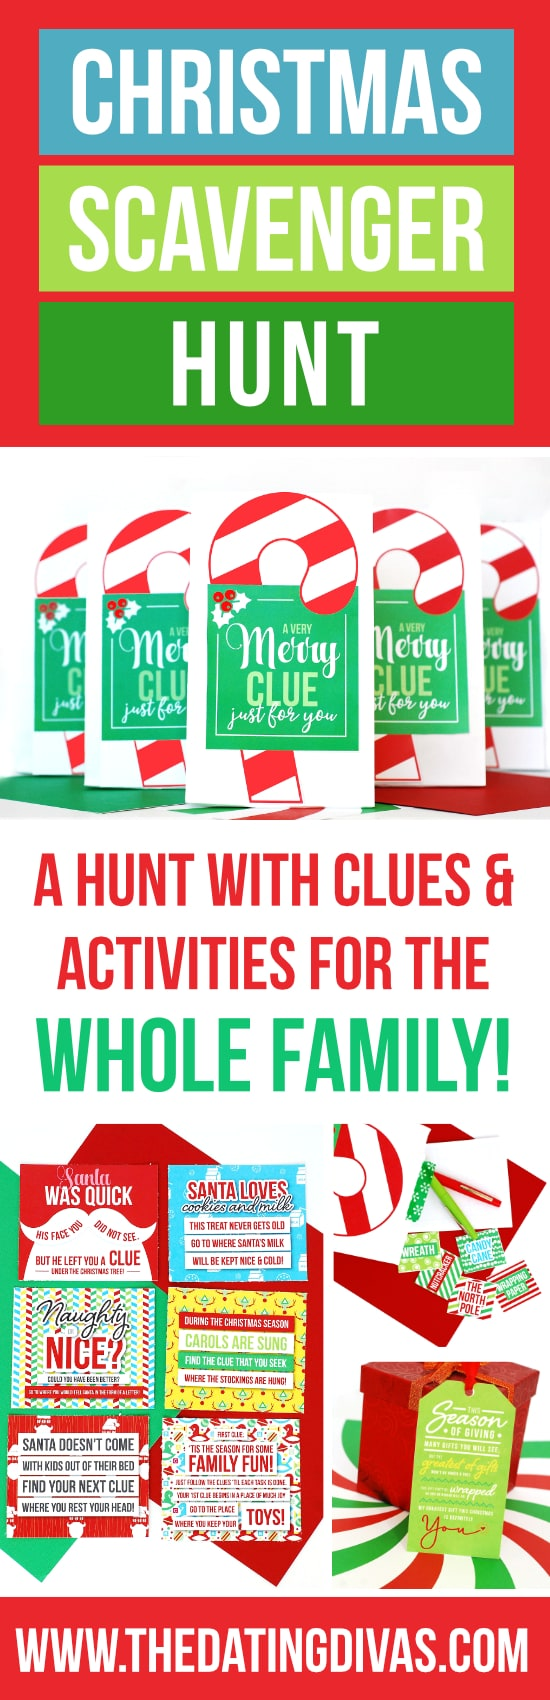 photo about Christmas Scavenger Hunt Printable Clues named Xmas Scavenger Hunt - The Relationship Divas